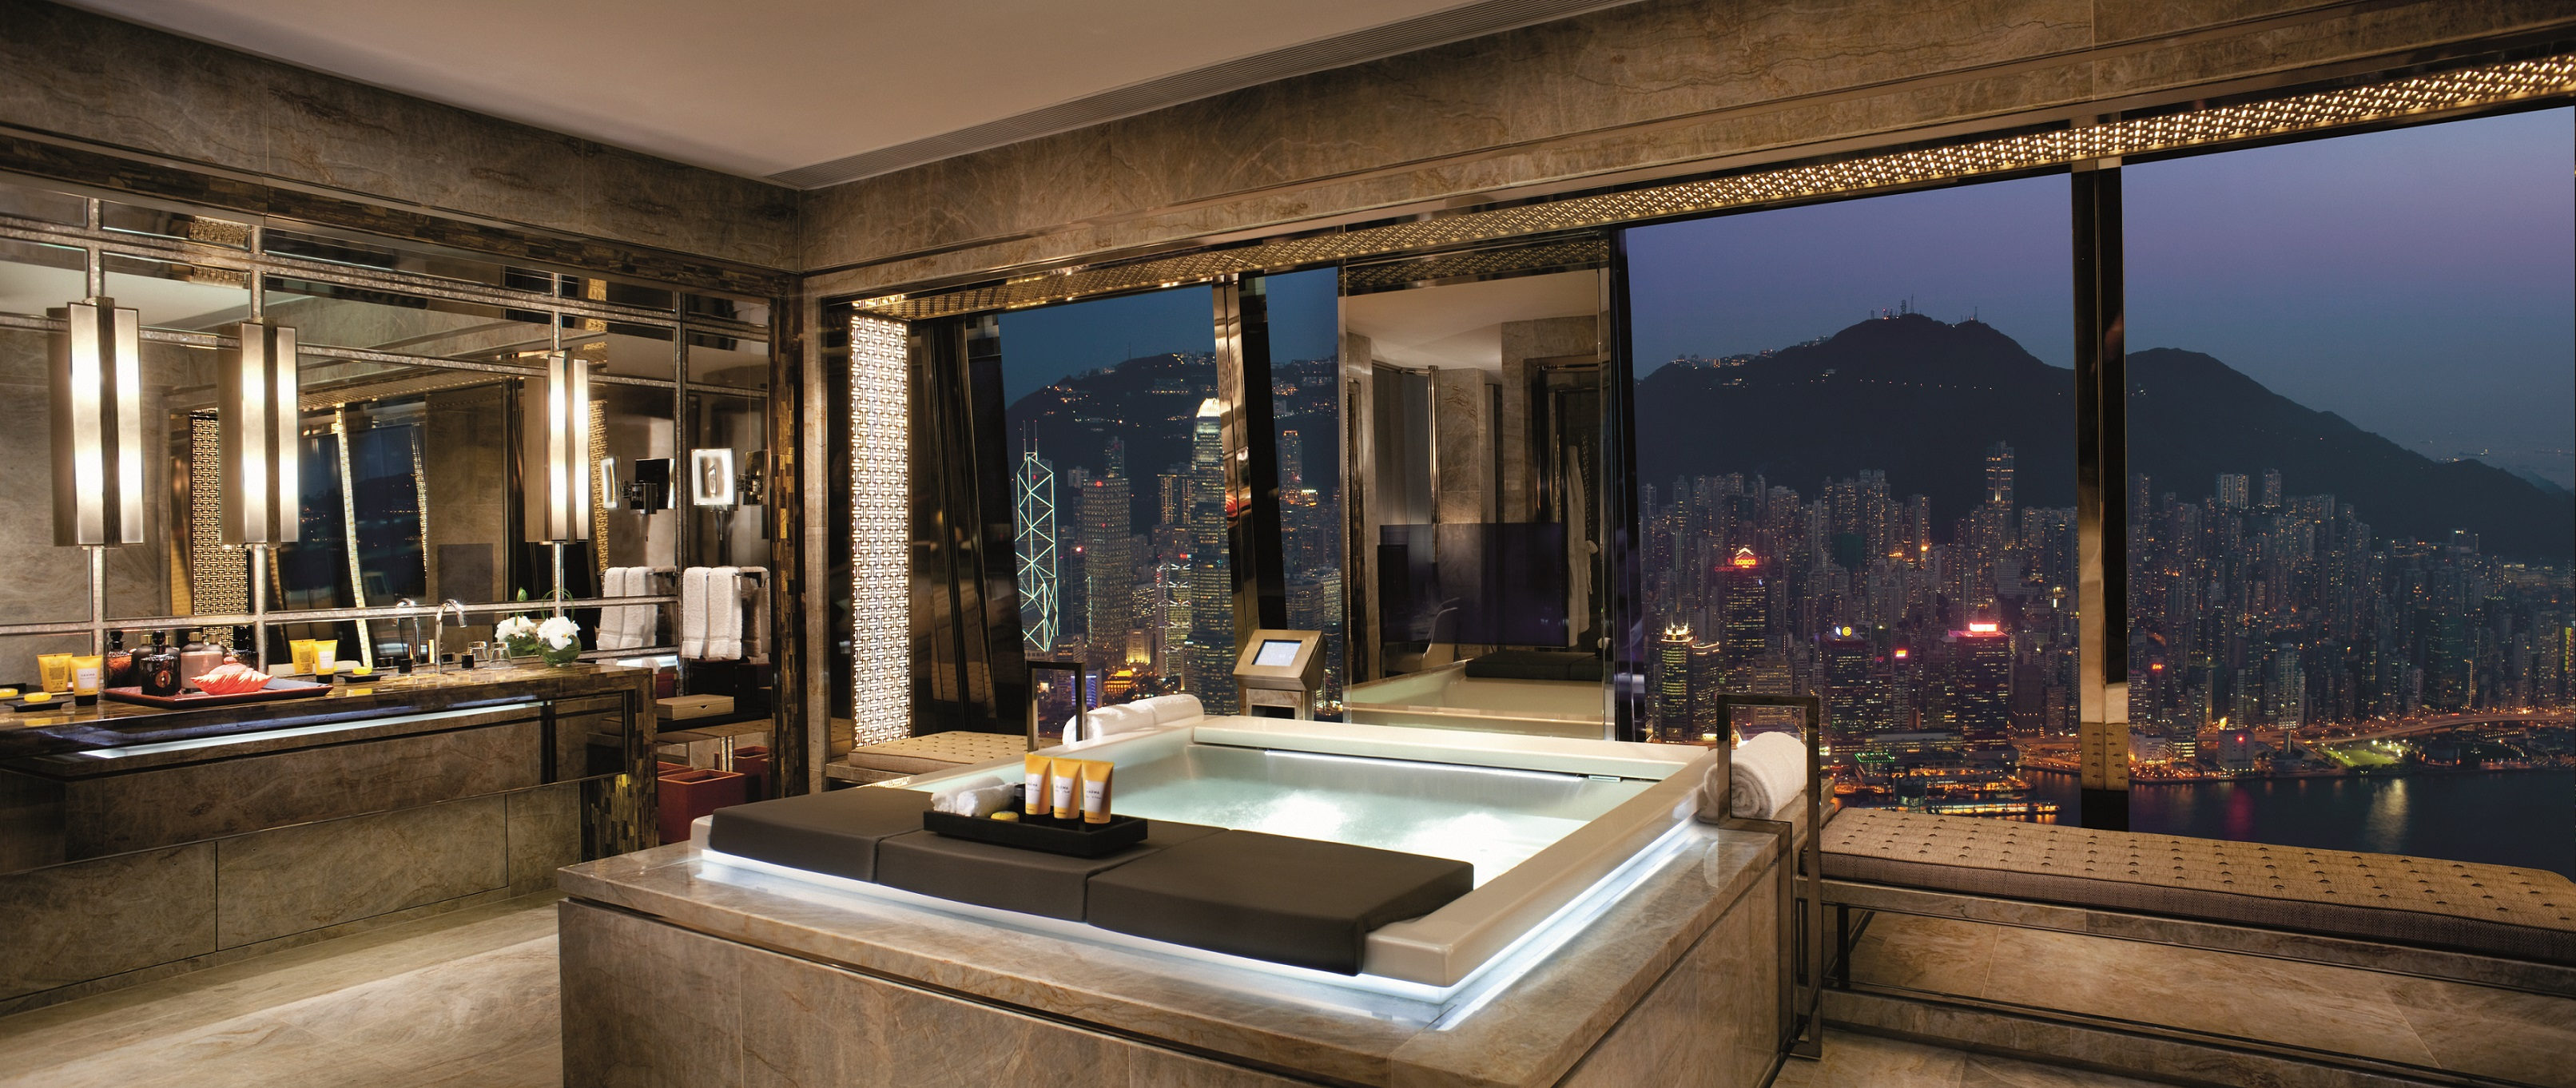 Delicieux The Ritz Carlton Suite   Victoria Harbour, Luxury Bathrooms